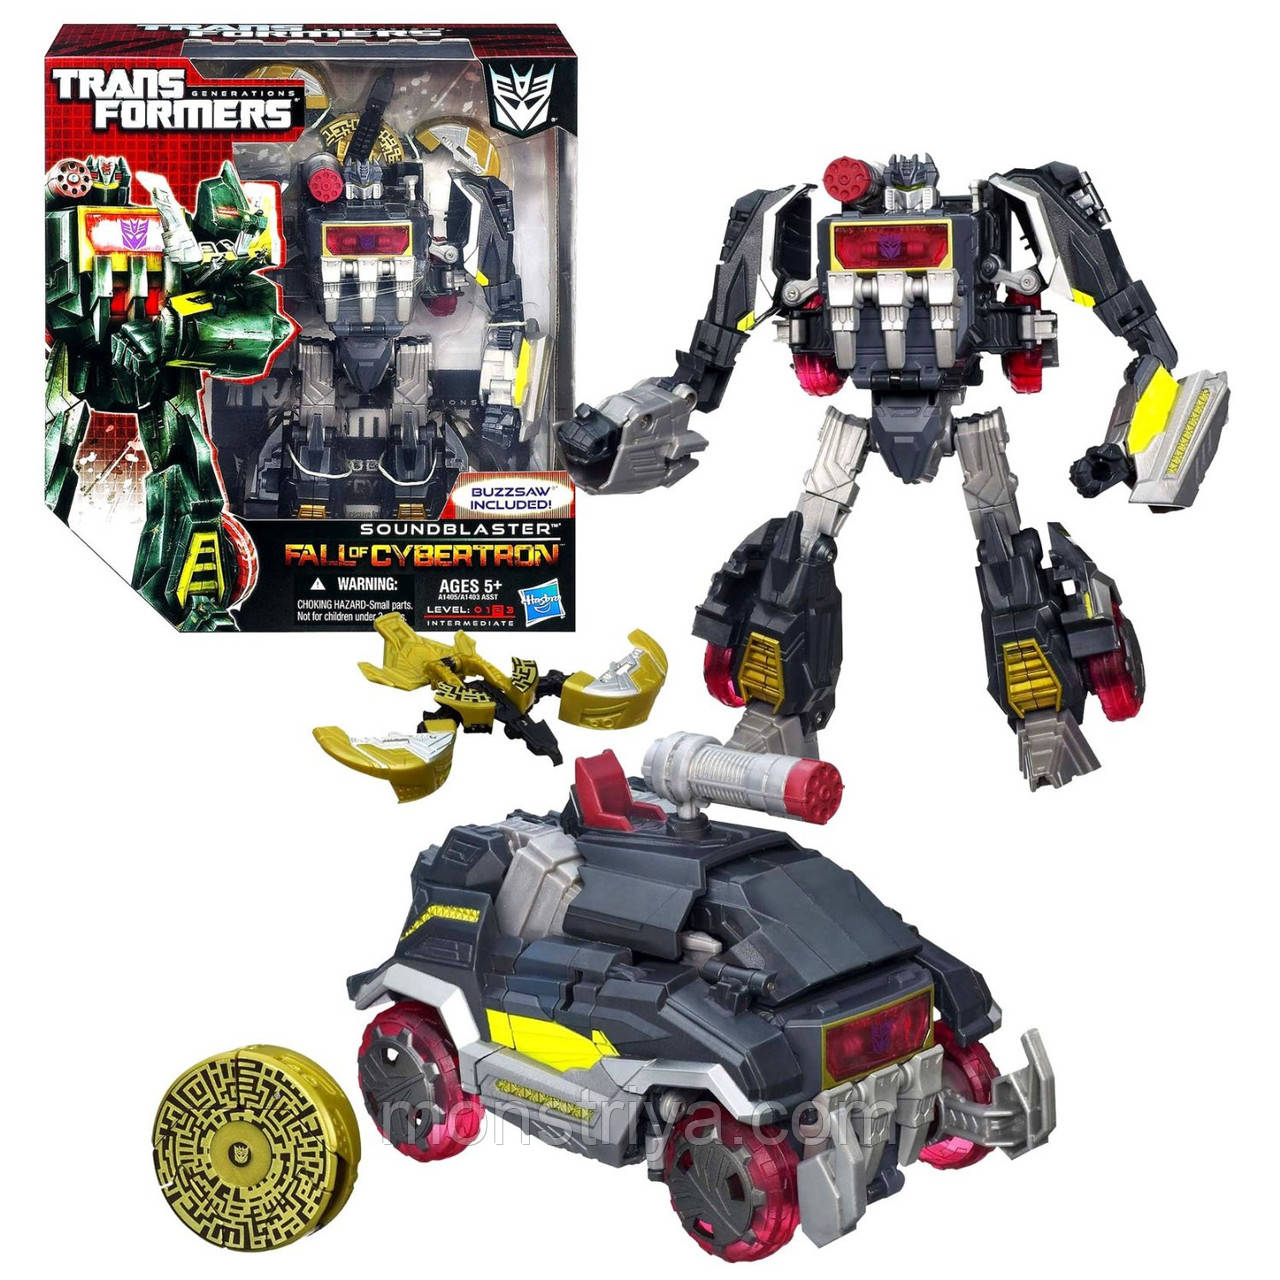 Transformers Робот Трансформер Generations Fall of Cybertron Series 1 Soundblaster